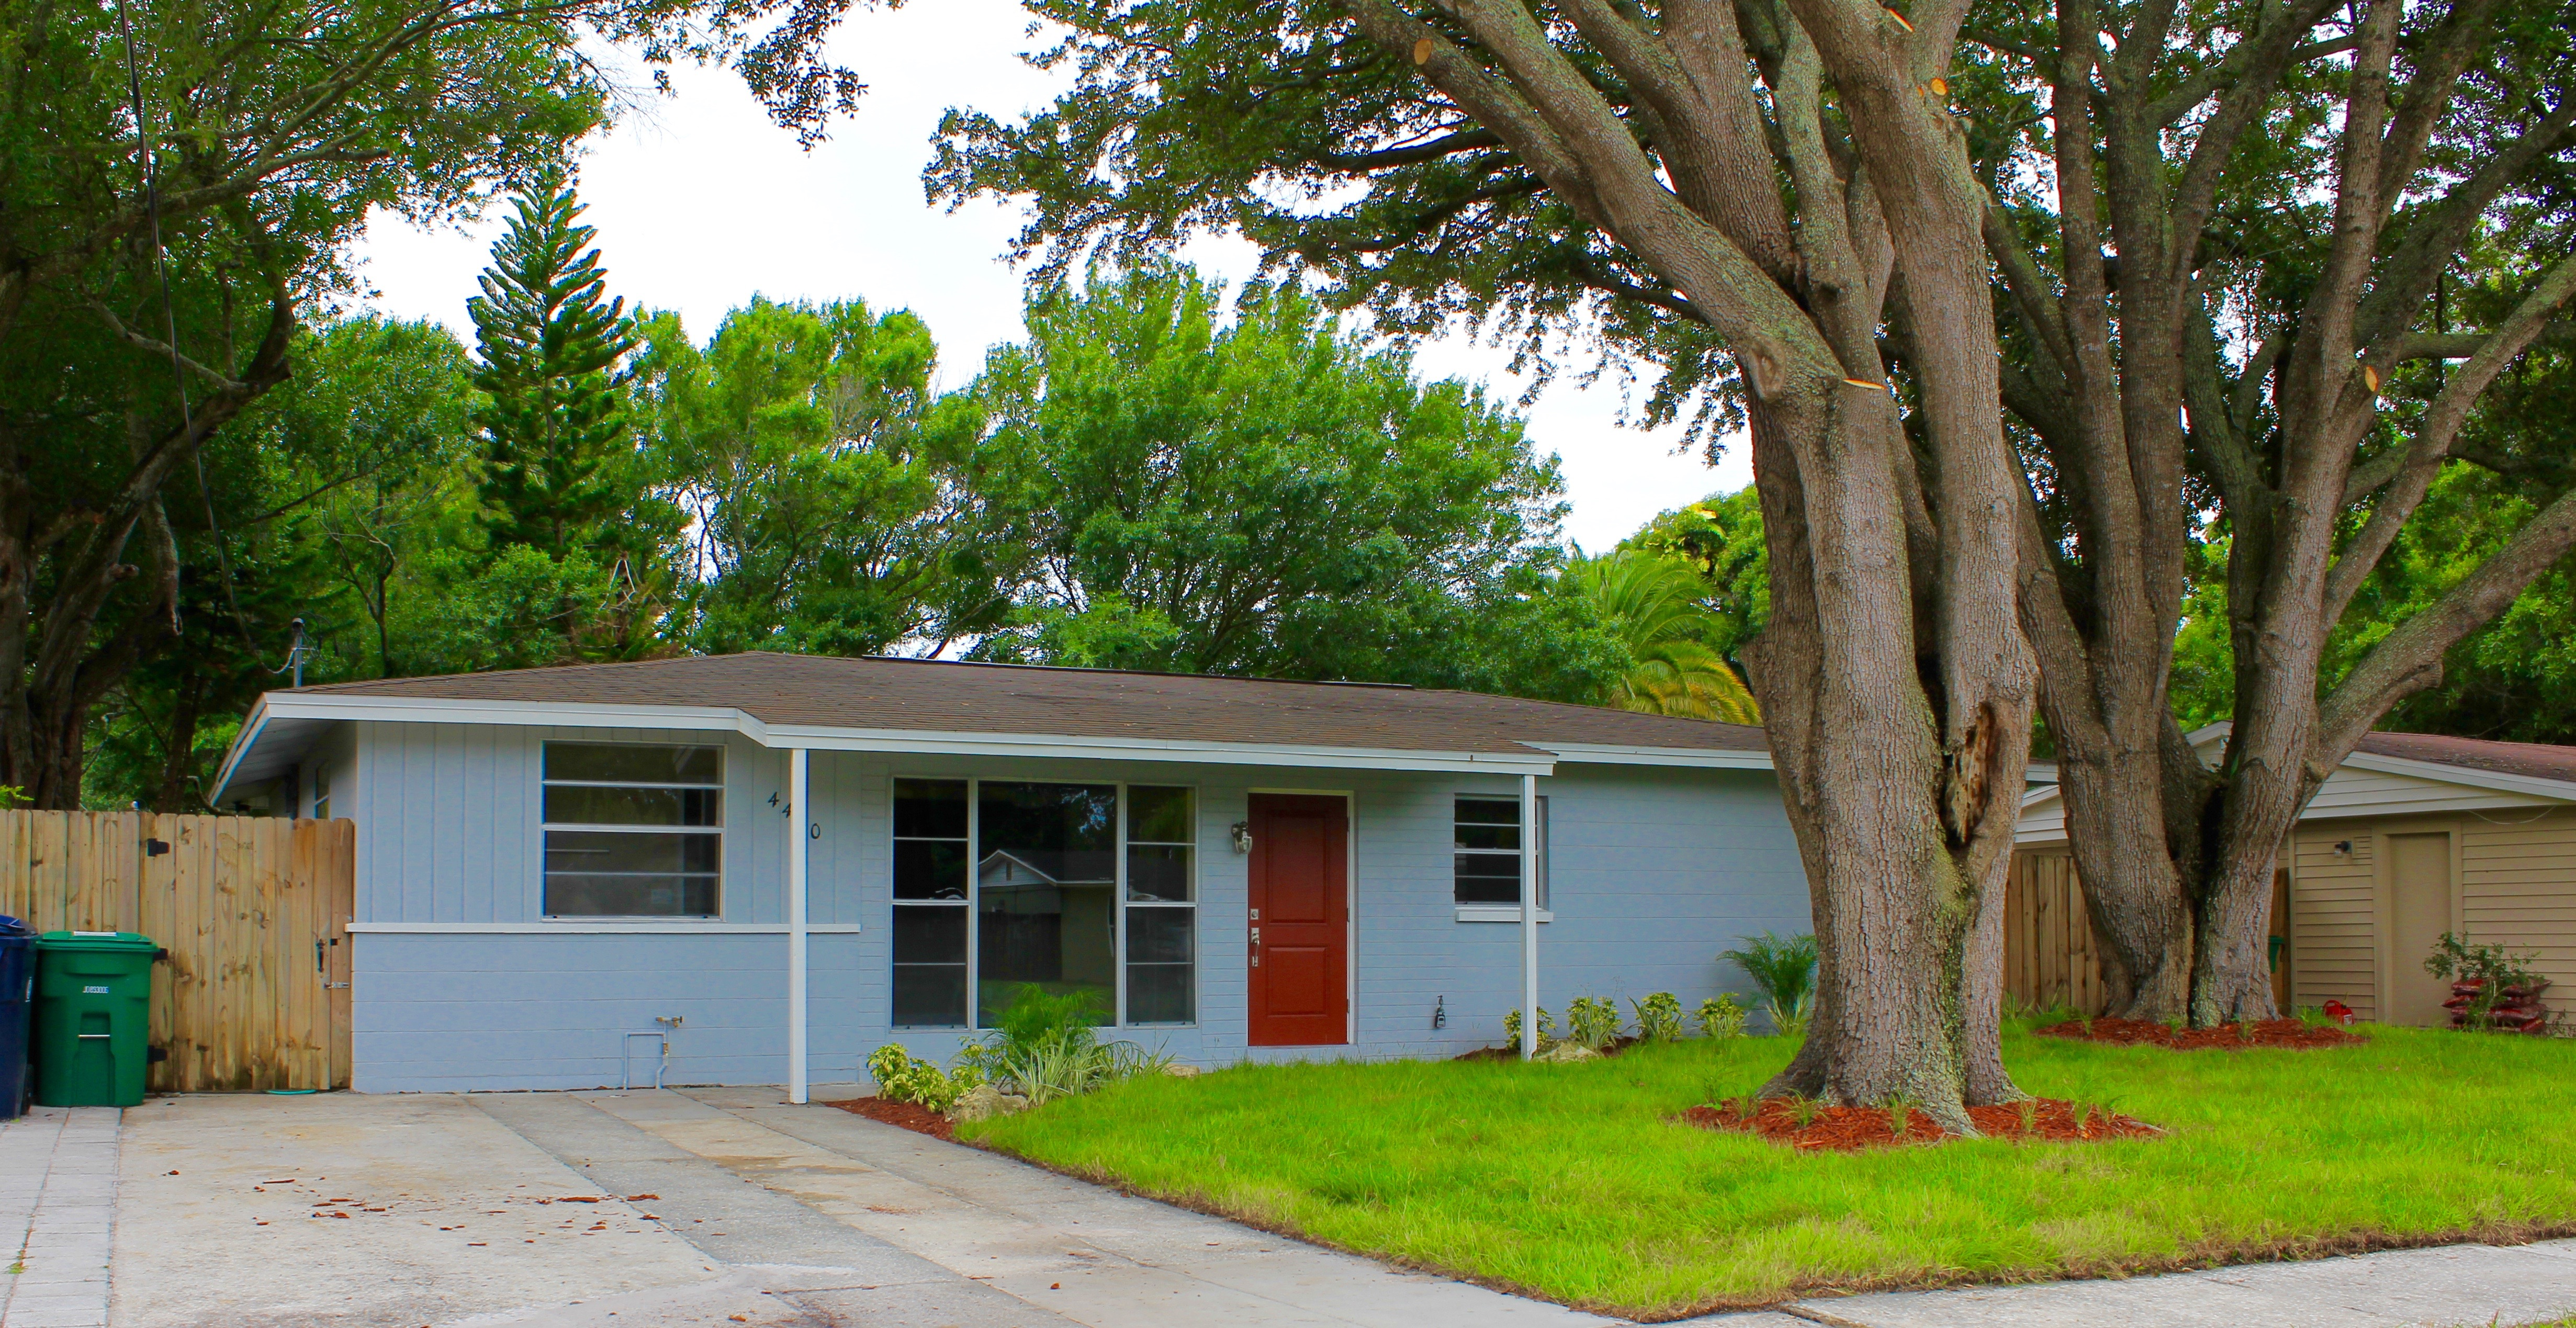 4420 W Wyoming Ave, Tampa, FL 33616